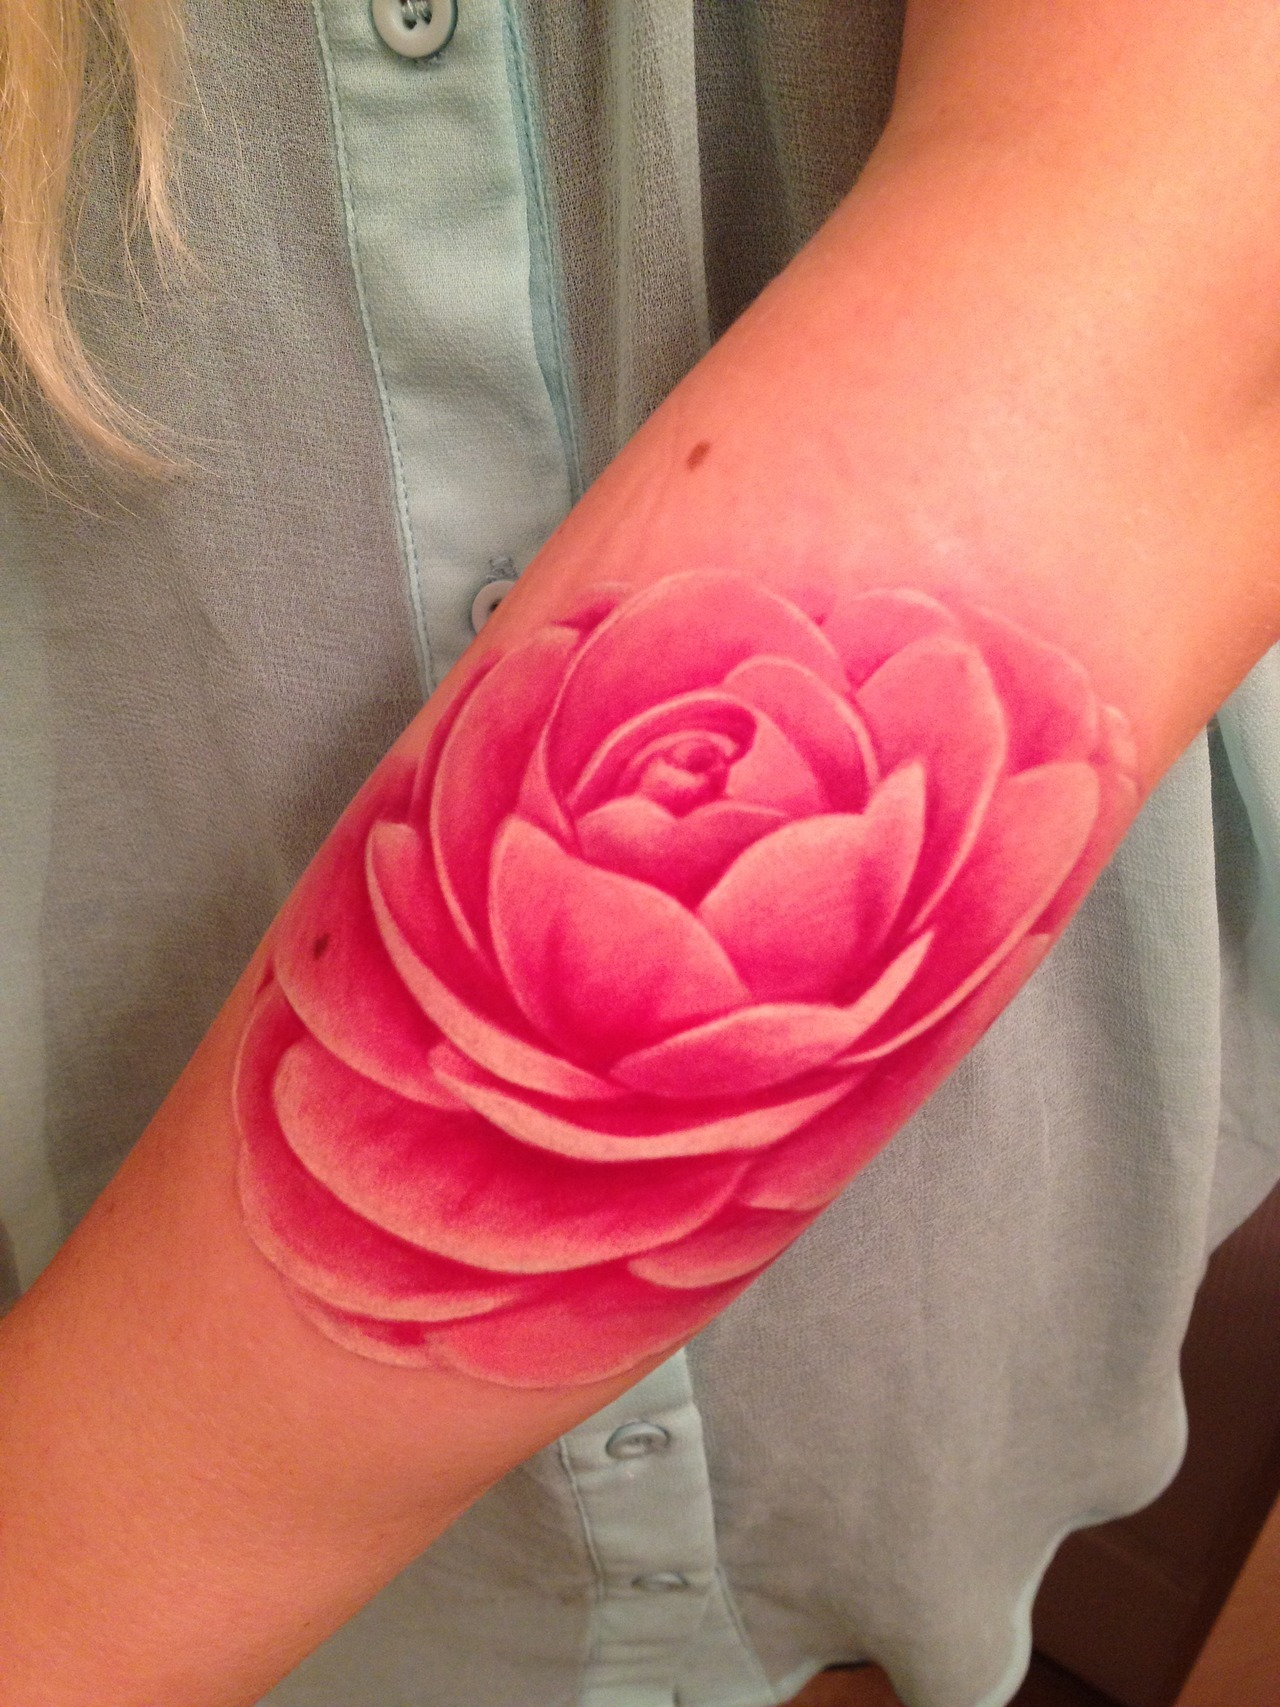 fuckyeahtattoos:  Camellia♥This is my second realistic flower piece by Rob Chambers from The Ink Spot located in Ottawa. In my opinion, he's the best in the region!My plan is to eventually get a full sleeve with different flowers by him. c: